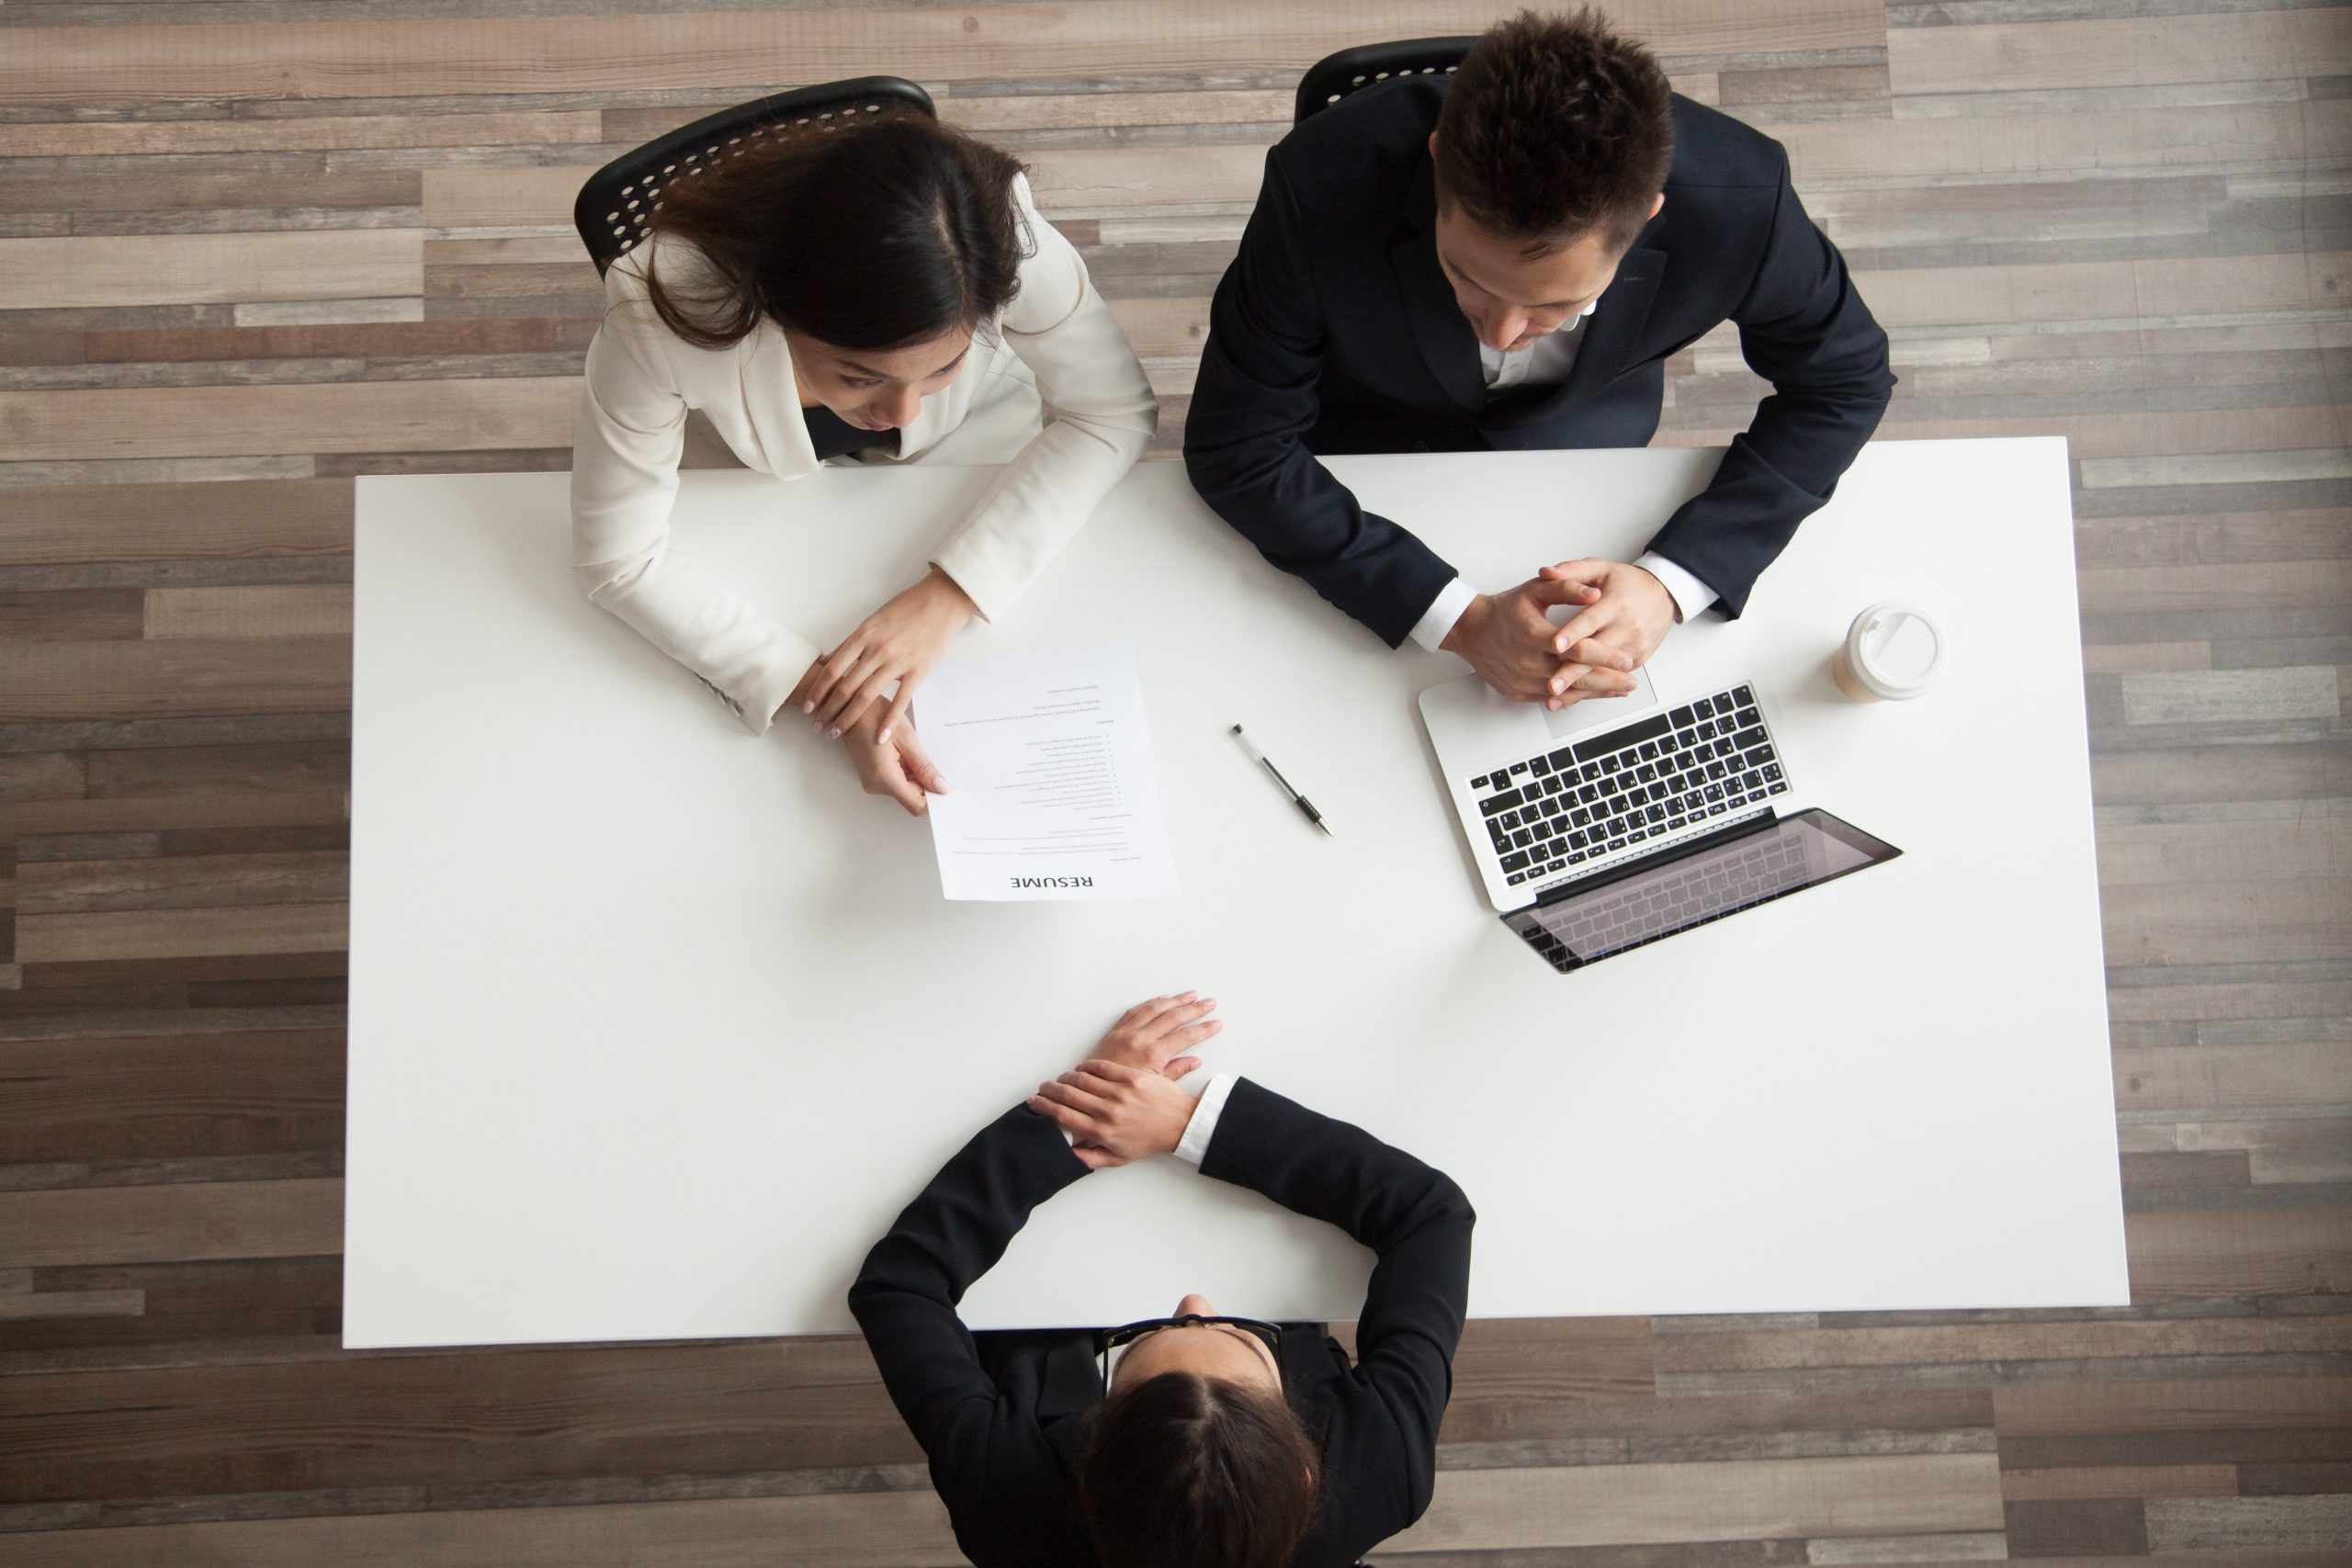 Hr managers interviewing female job applicant, recruiters listen to candidate answering questions at hiring negotiations, recruiting and staffing, making first impression concept, top view from above